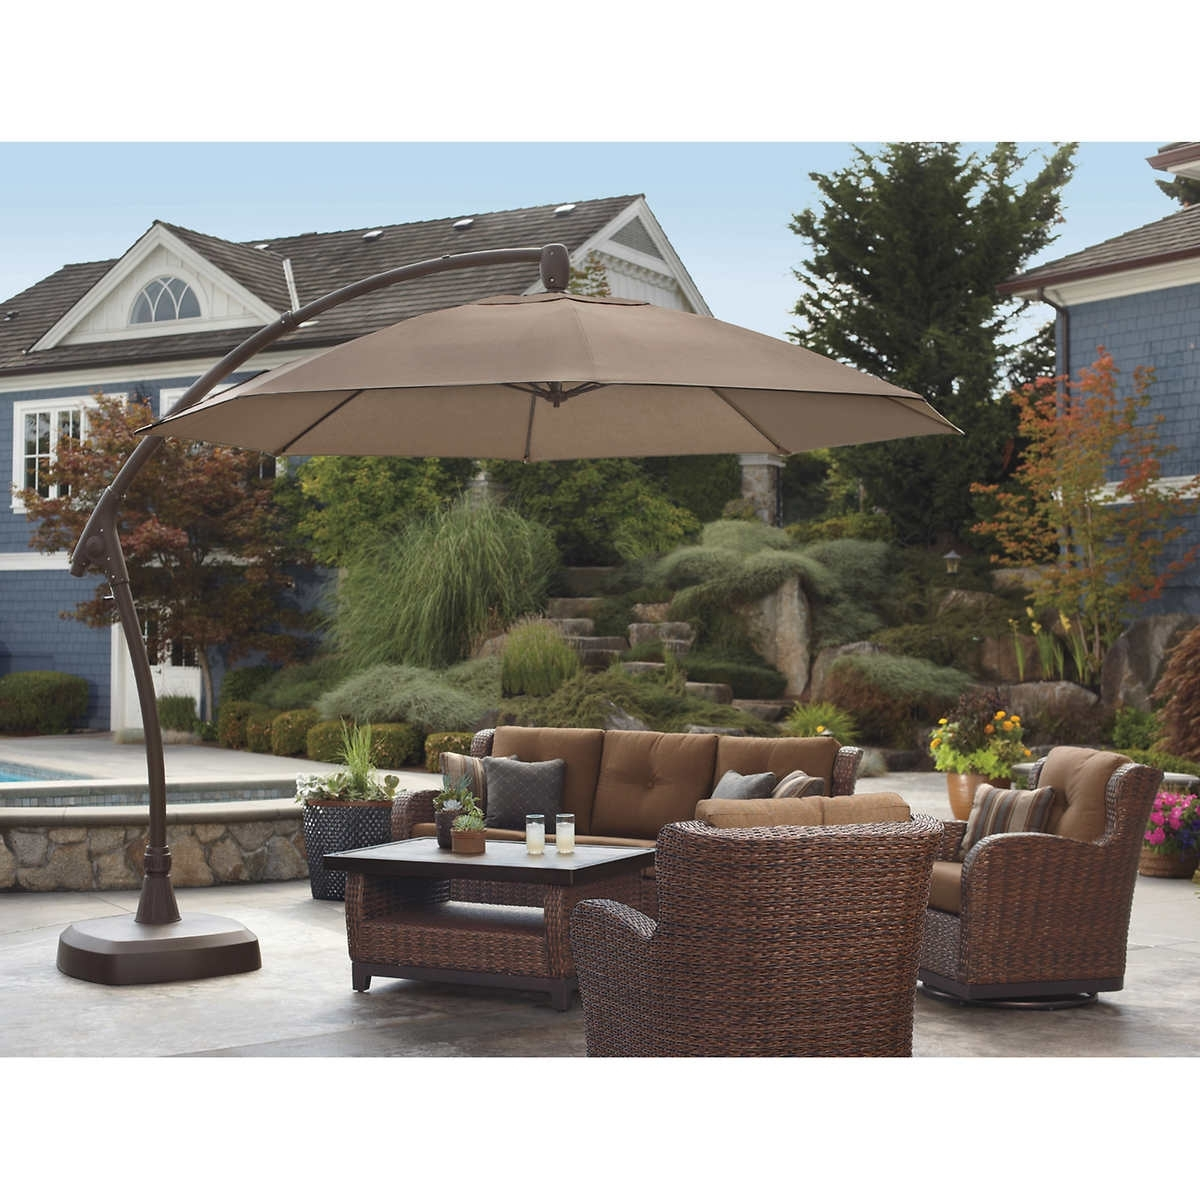 Popular Patio Umbrellas At Costco Canada – Patio Ideas Inside Sunbrella Patio Umbrellas At Costco (View 4 of 20)